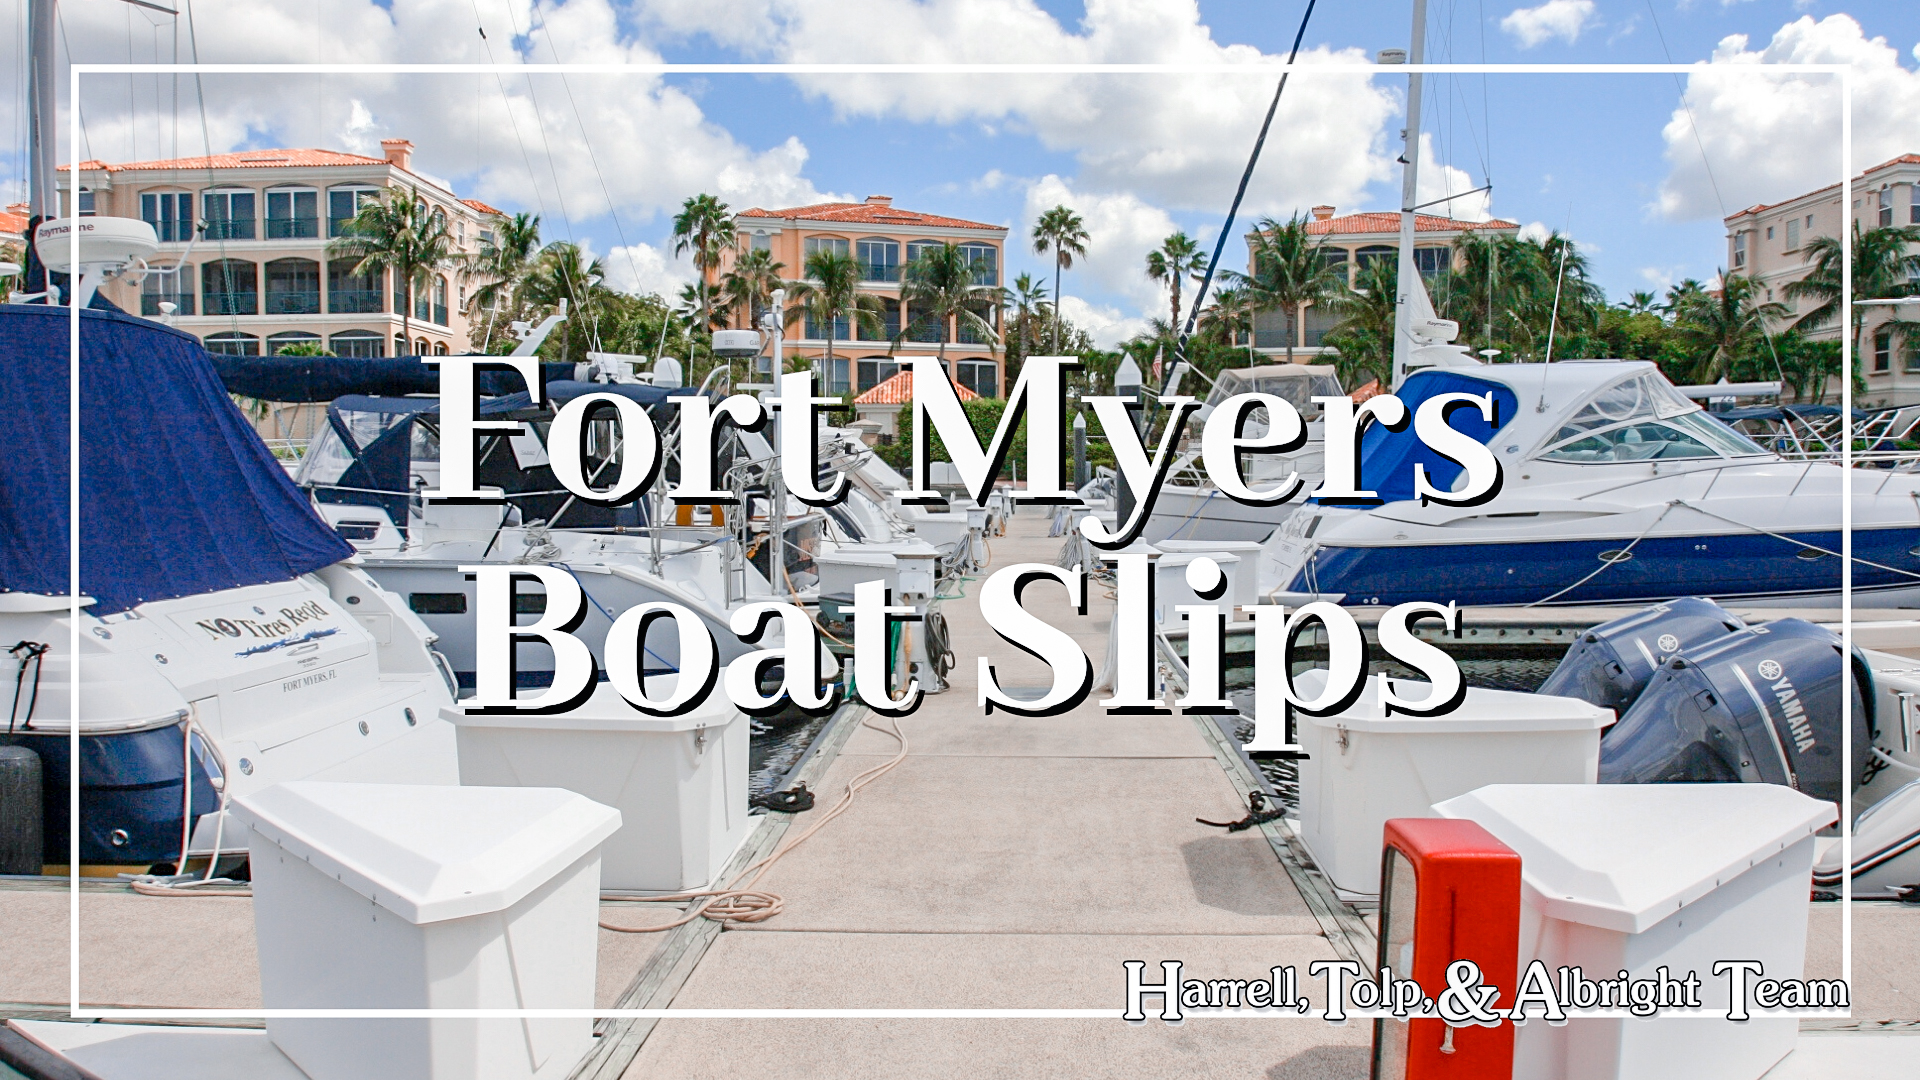 Fort Myers Boat Slips